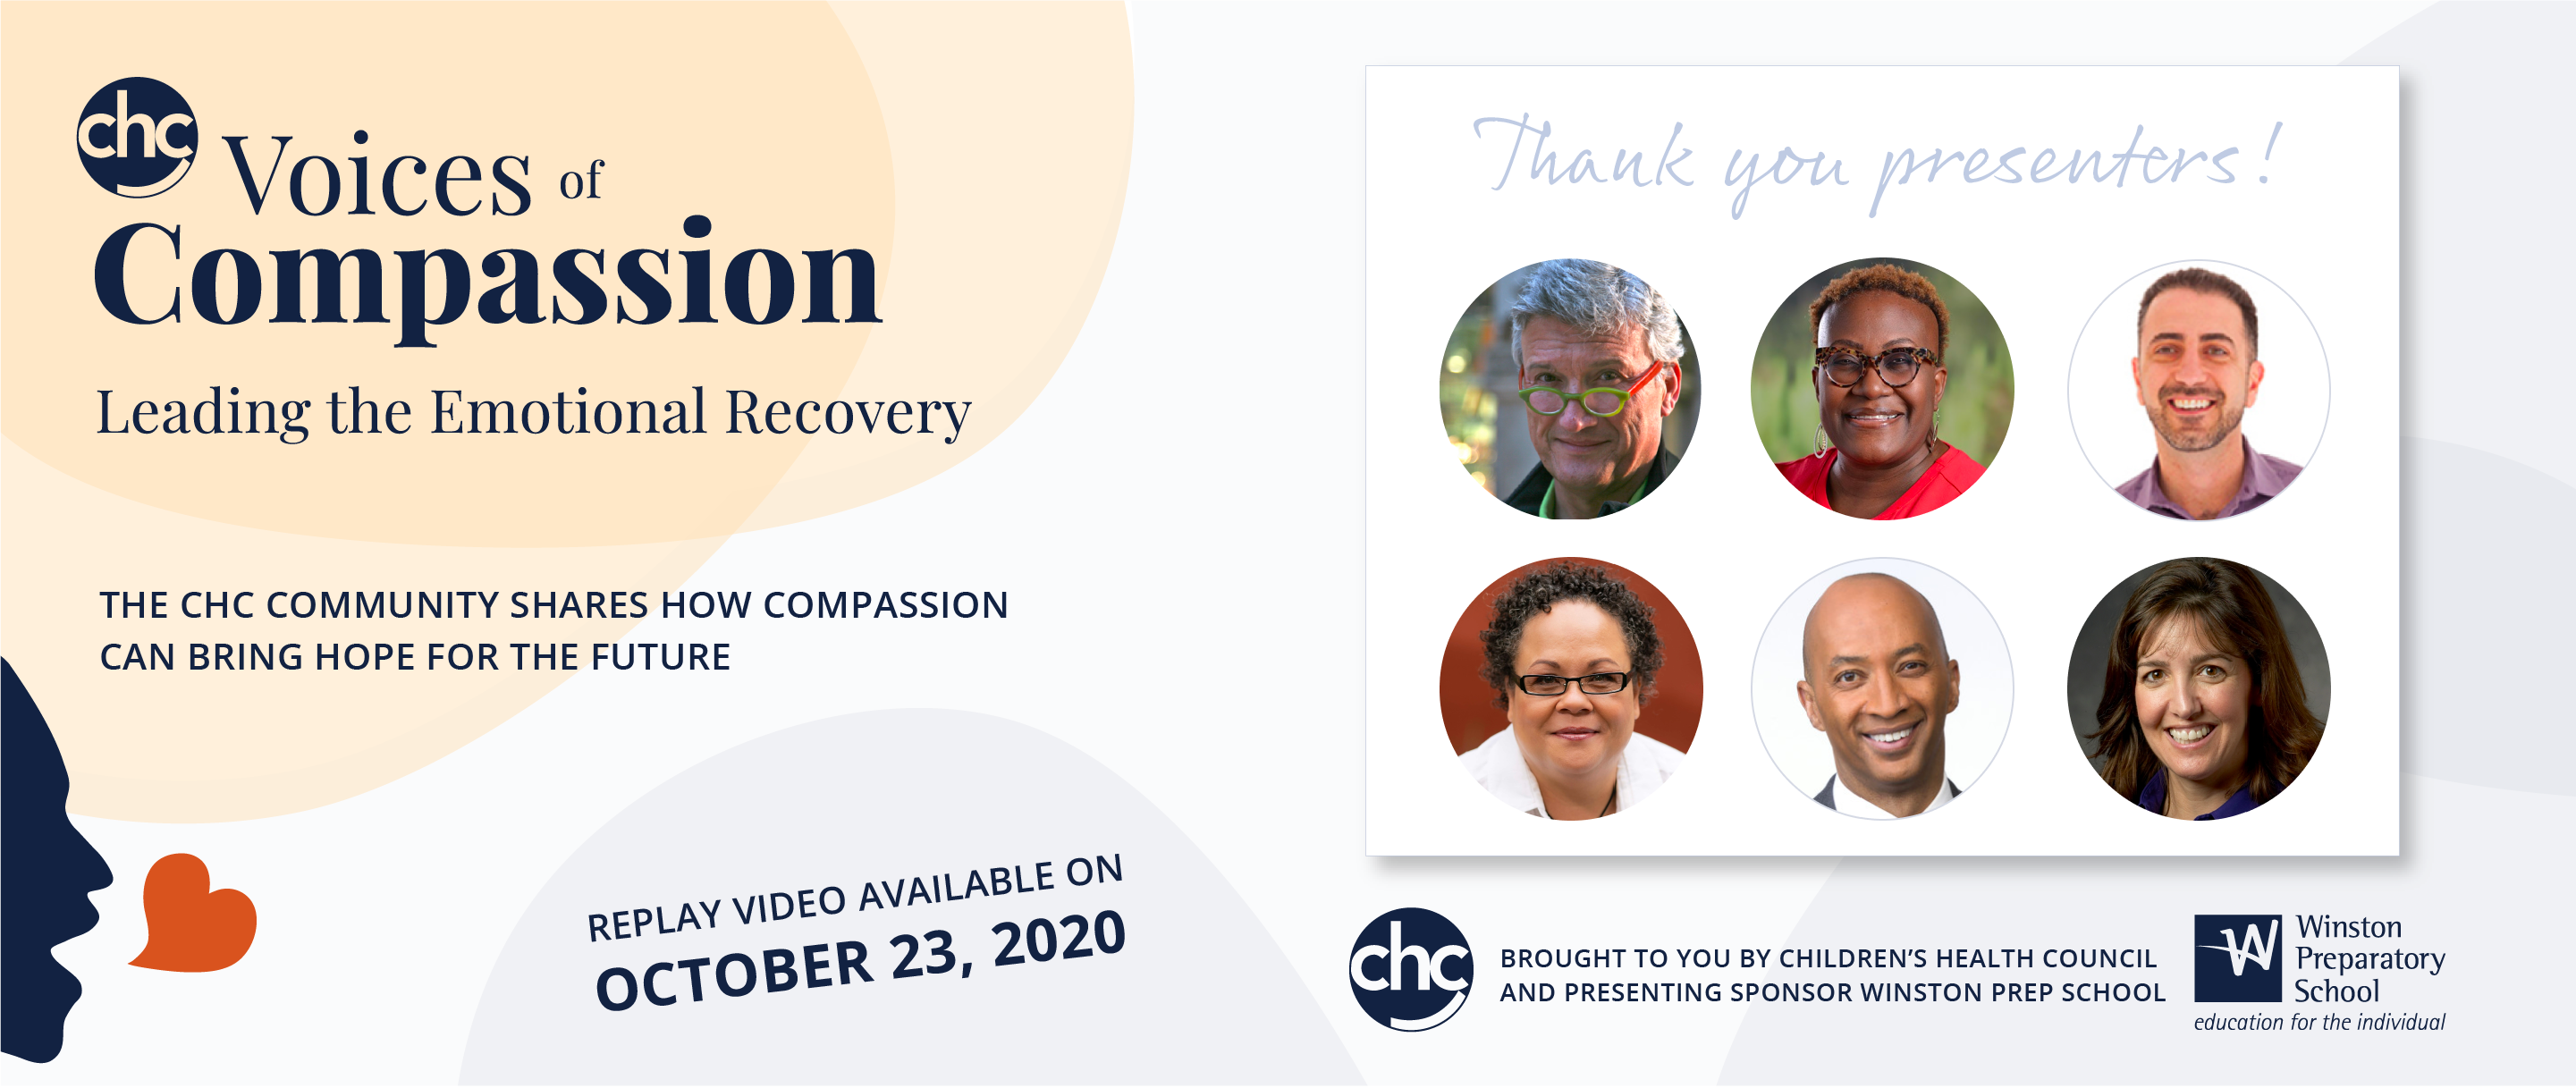 Voices of compassion, leading the emotional recovery